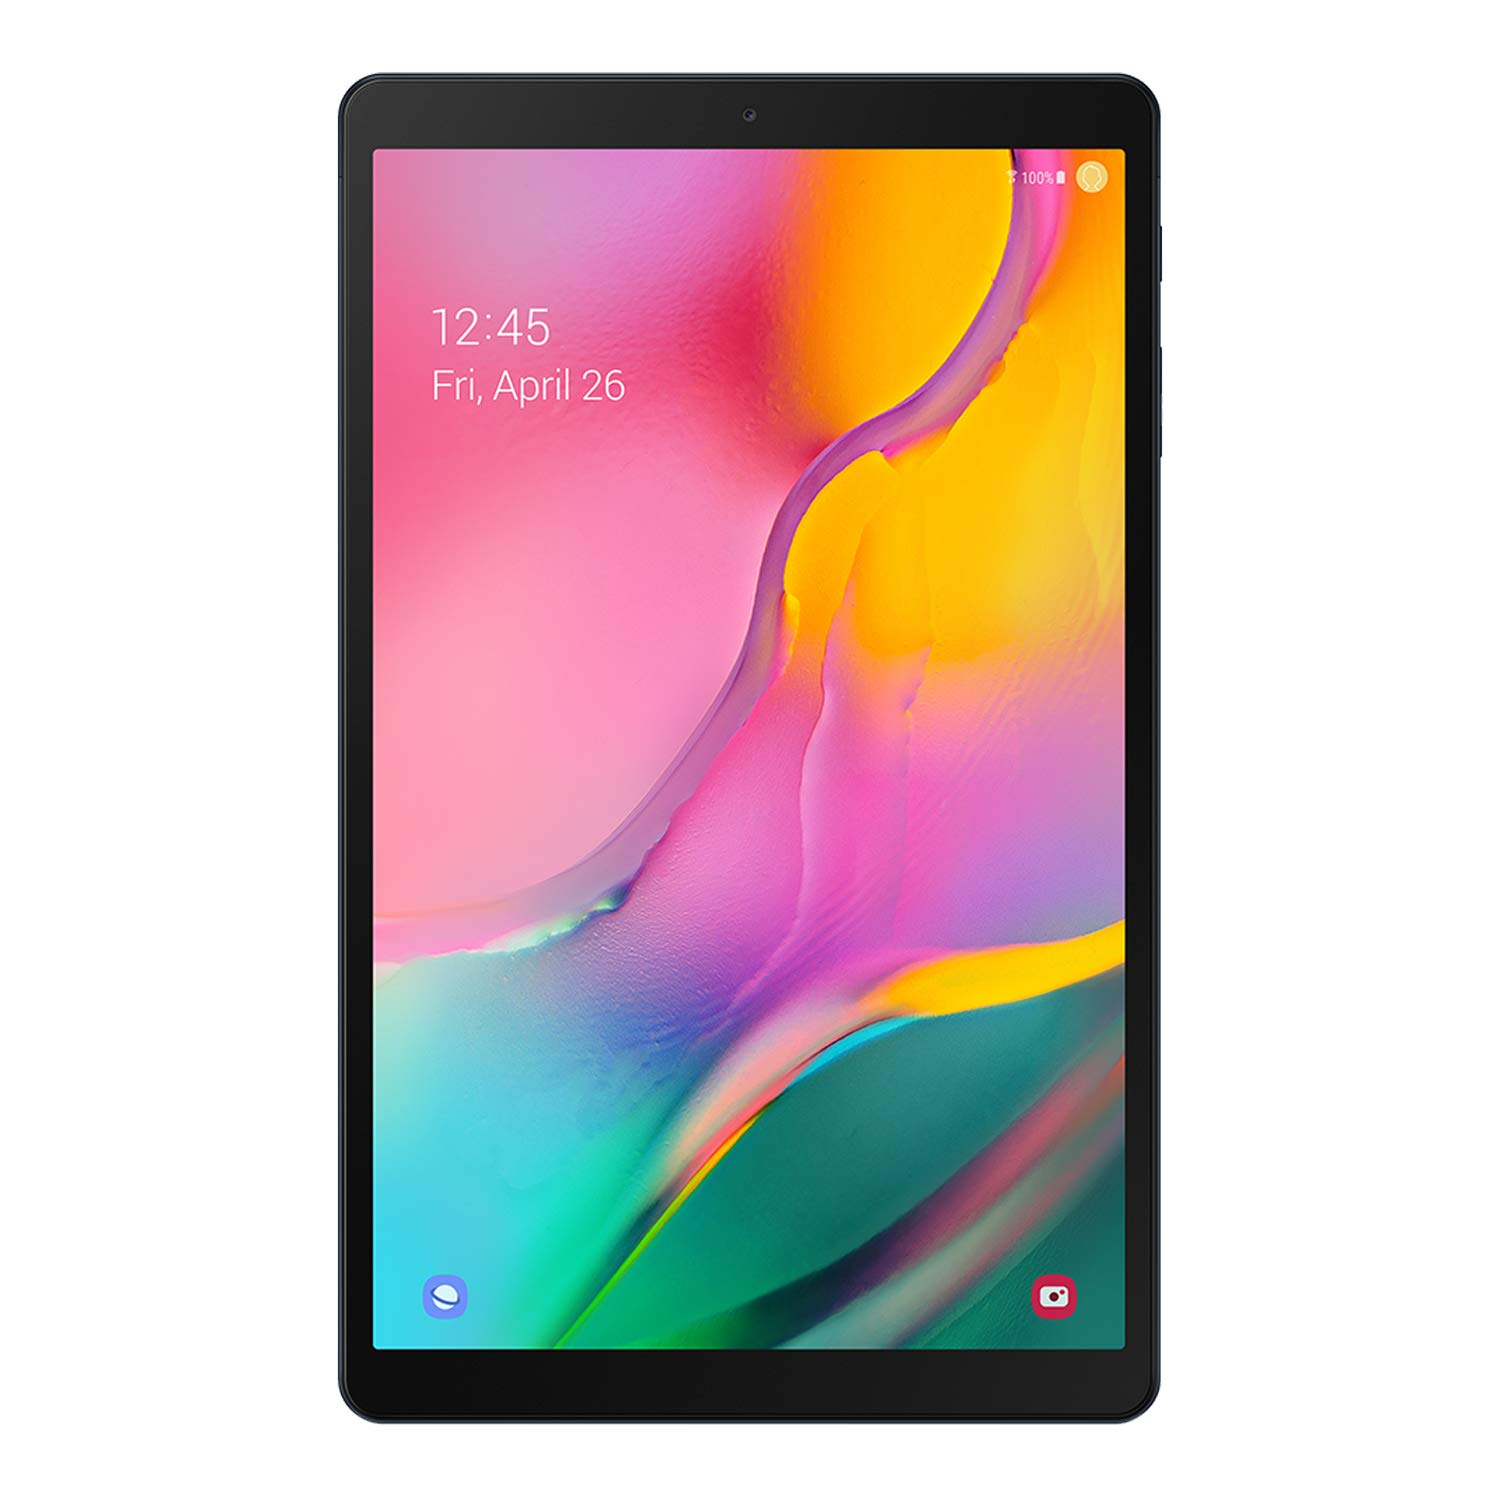 Samsung Galaxy Tab A 10.1 32 GB Wifi Tablet Black (2020)